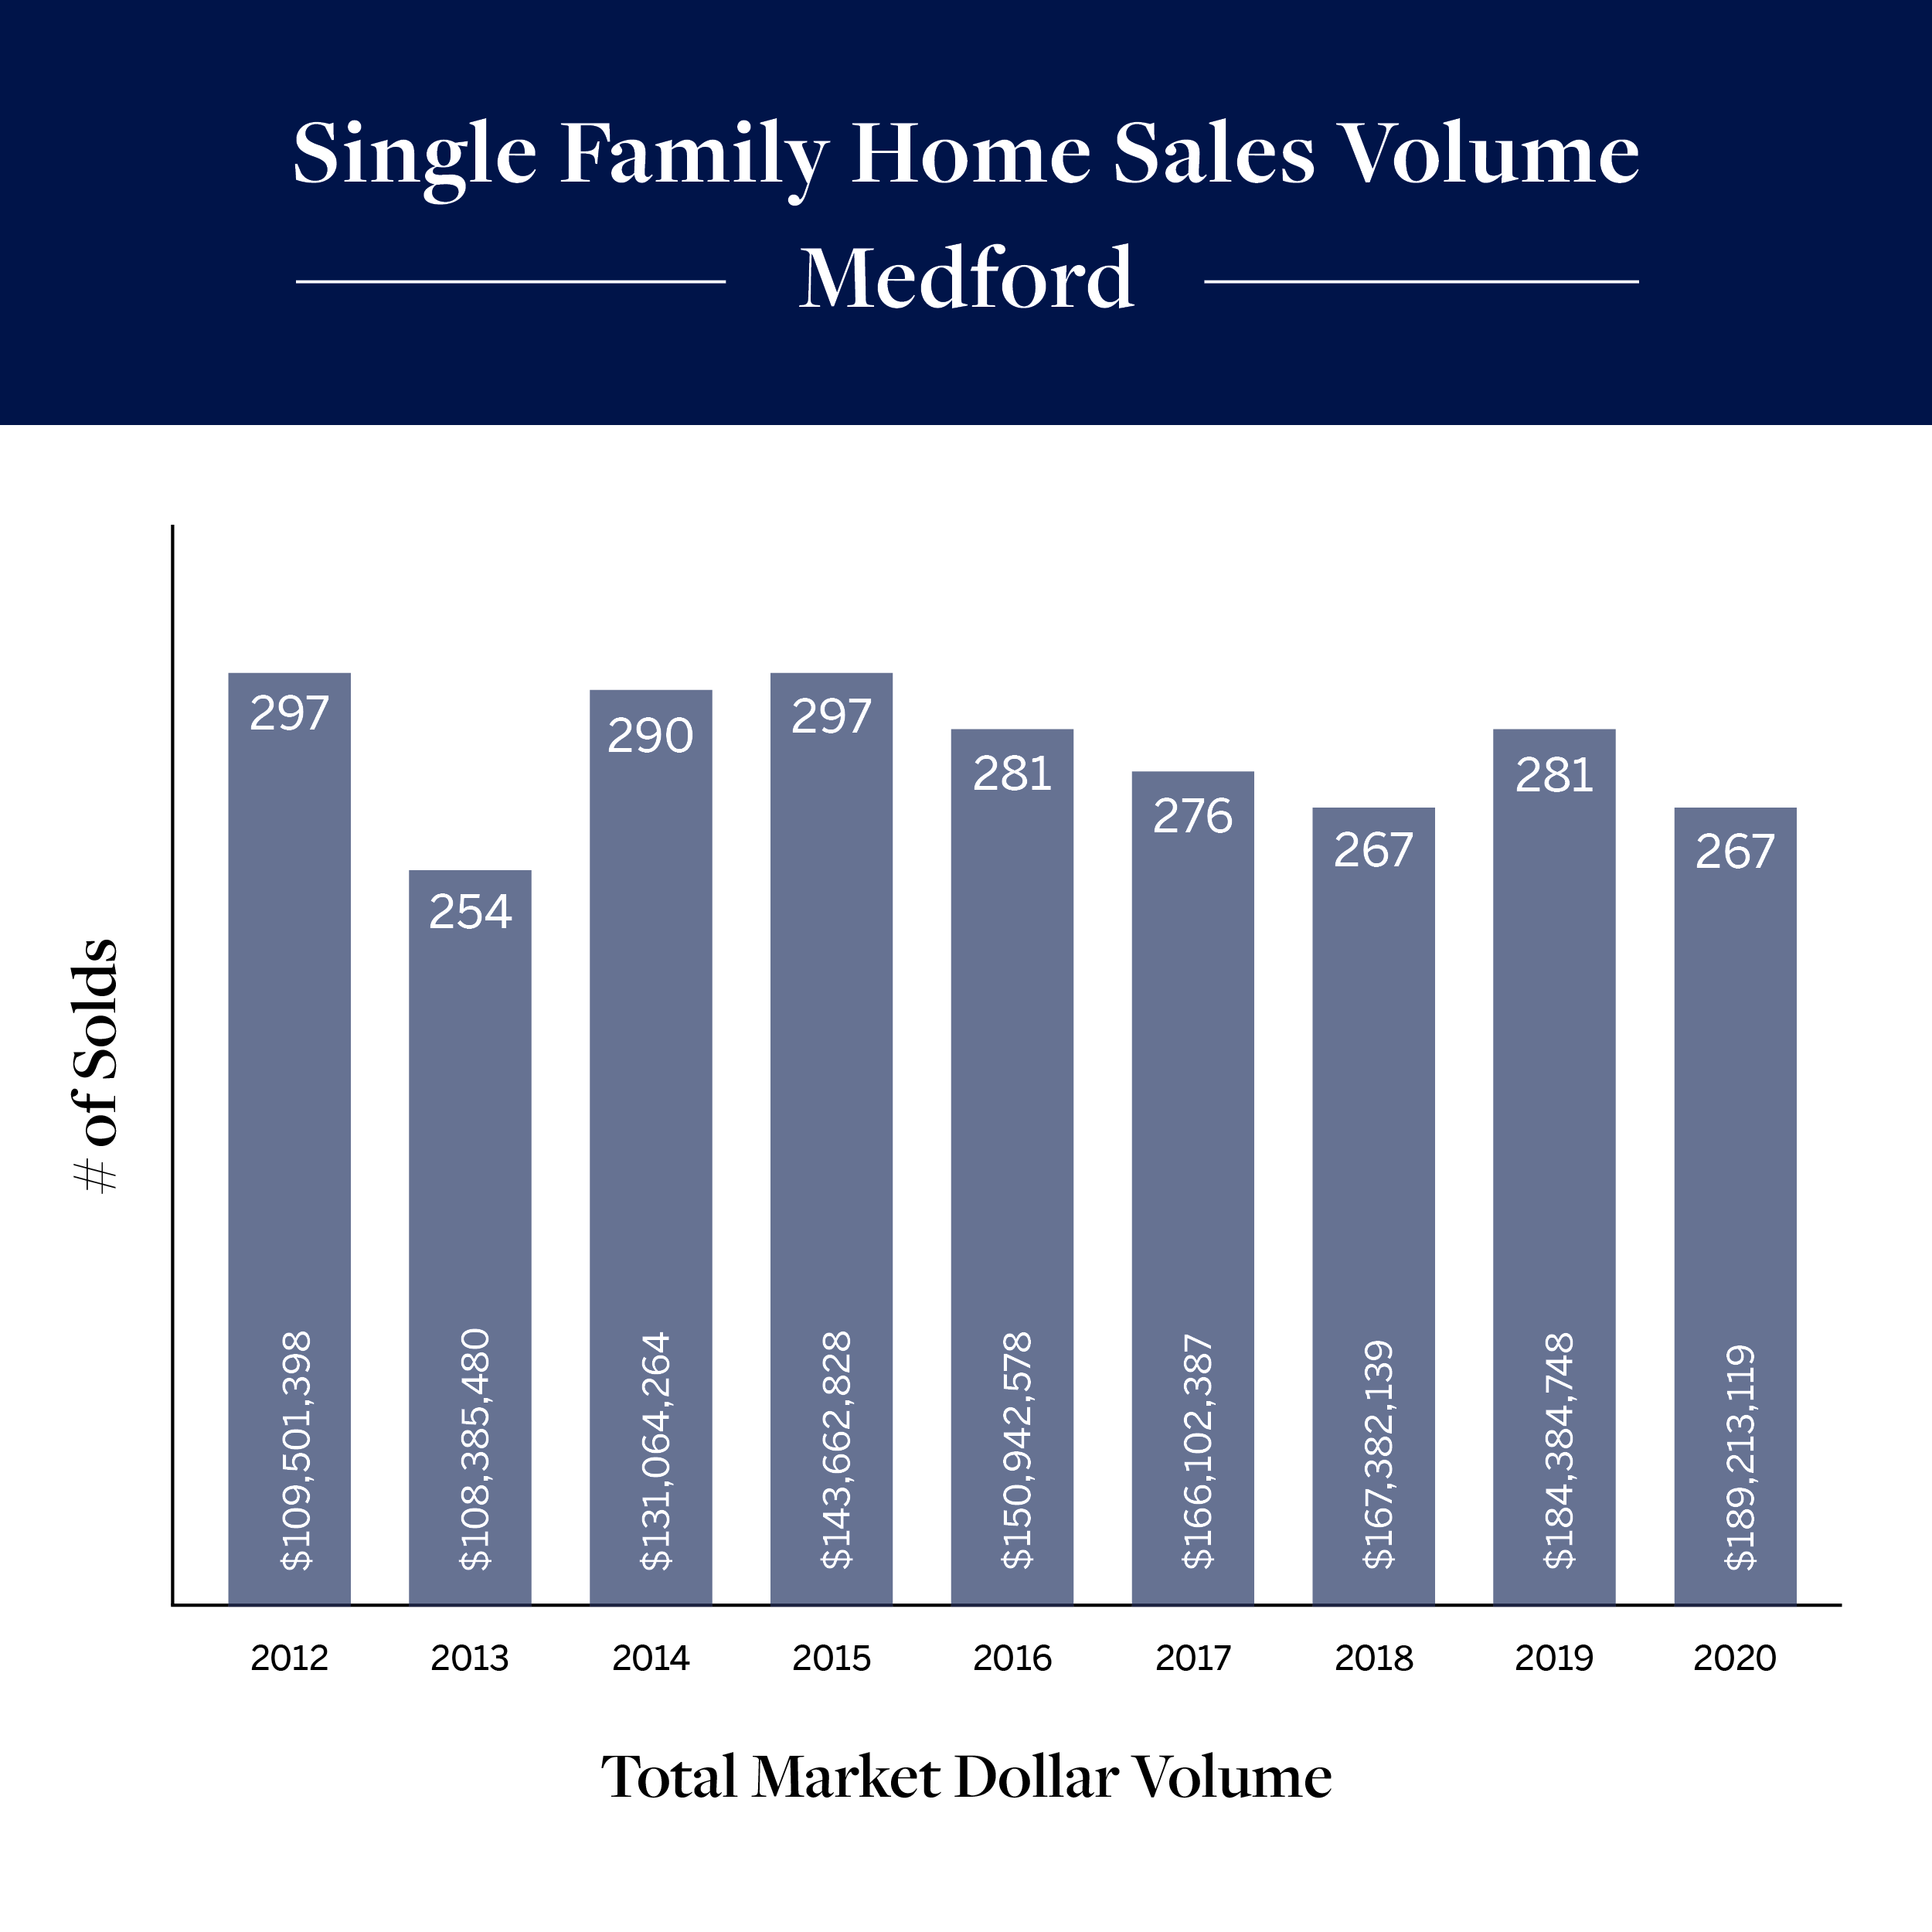 Single Family Home Sales Medford